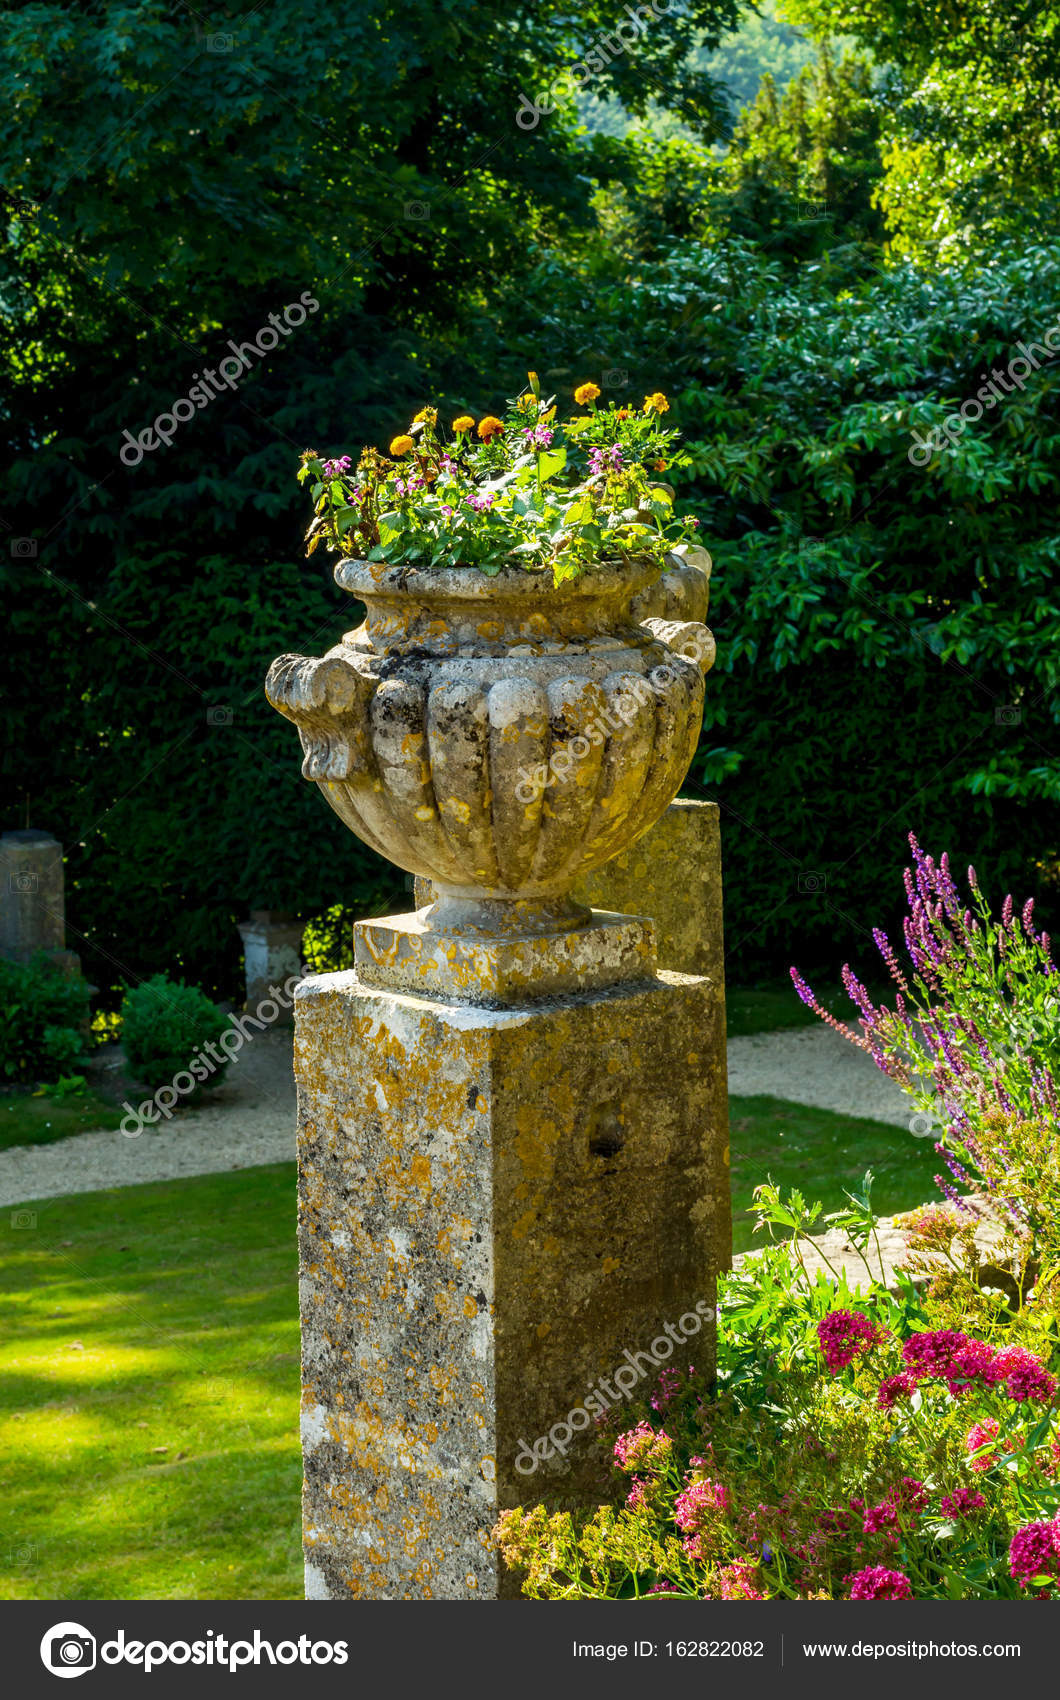 Depositphotos & Concrete flower pots in the garden on a pedestal stylized antiqu ...